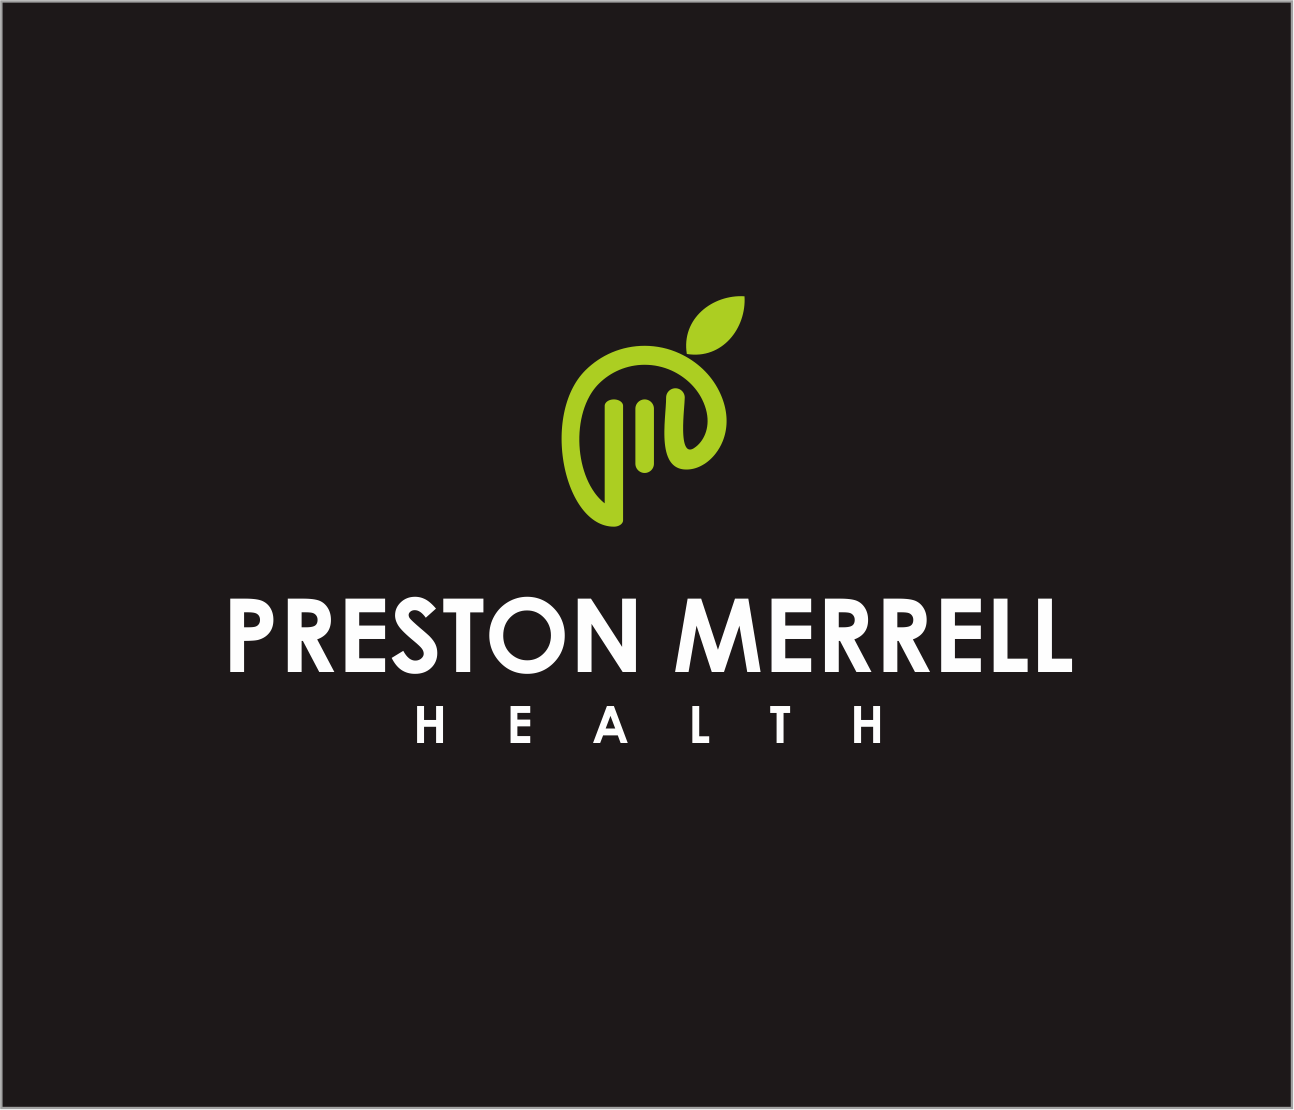 Logo Design by Armada Jamaluddin - Entry No. 212 in the Logo Design Contest Creative Logo Design for Preston Merrell Health.